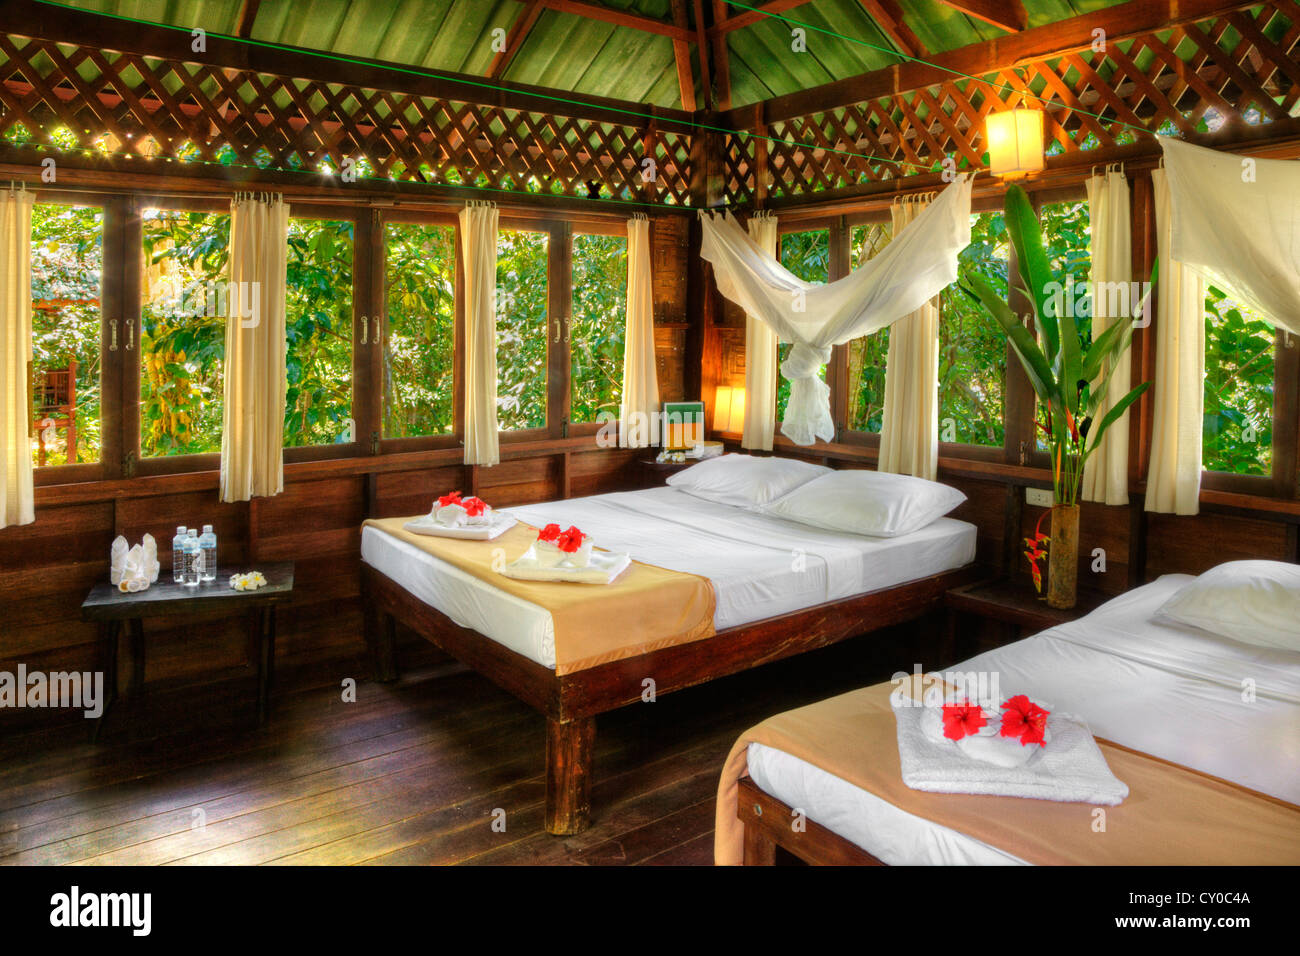 atree house interior at our jungle house a lodge in the